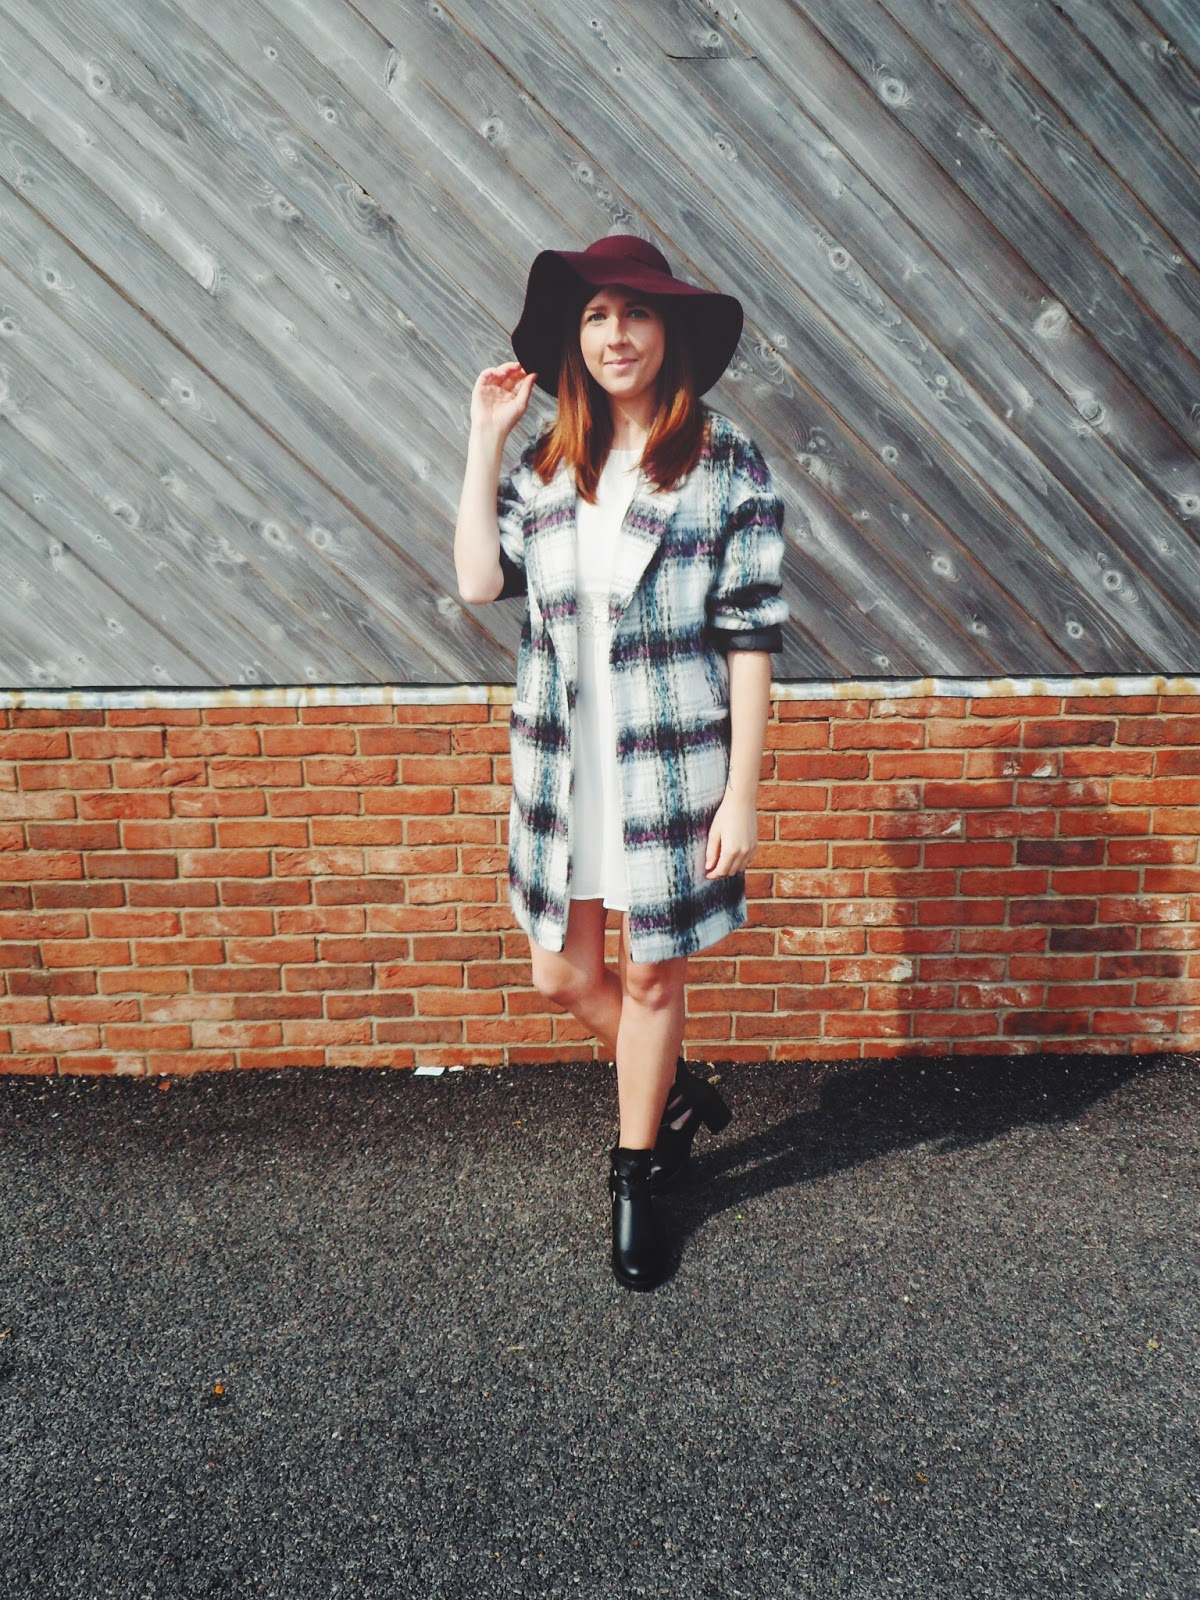 asseenonme, wiw, whatimwearing, whatibought, primark, shoezone, topshop, ootd, outfitoftheday, floppyhat, winter, autumnwinter2014, bristol, fbloggers, fashionbloggers, outfitpost